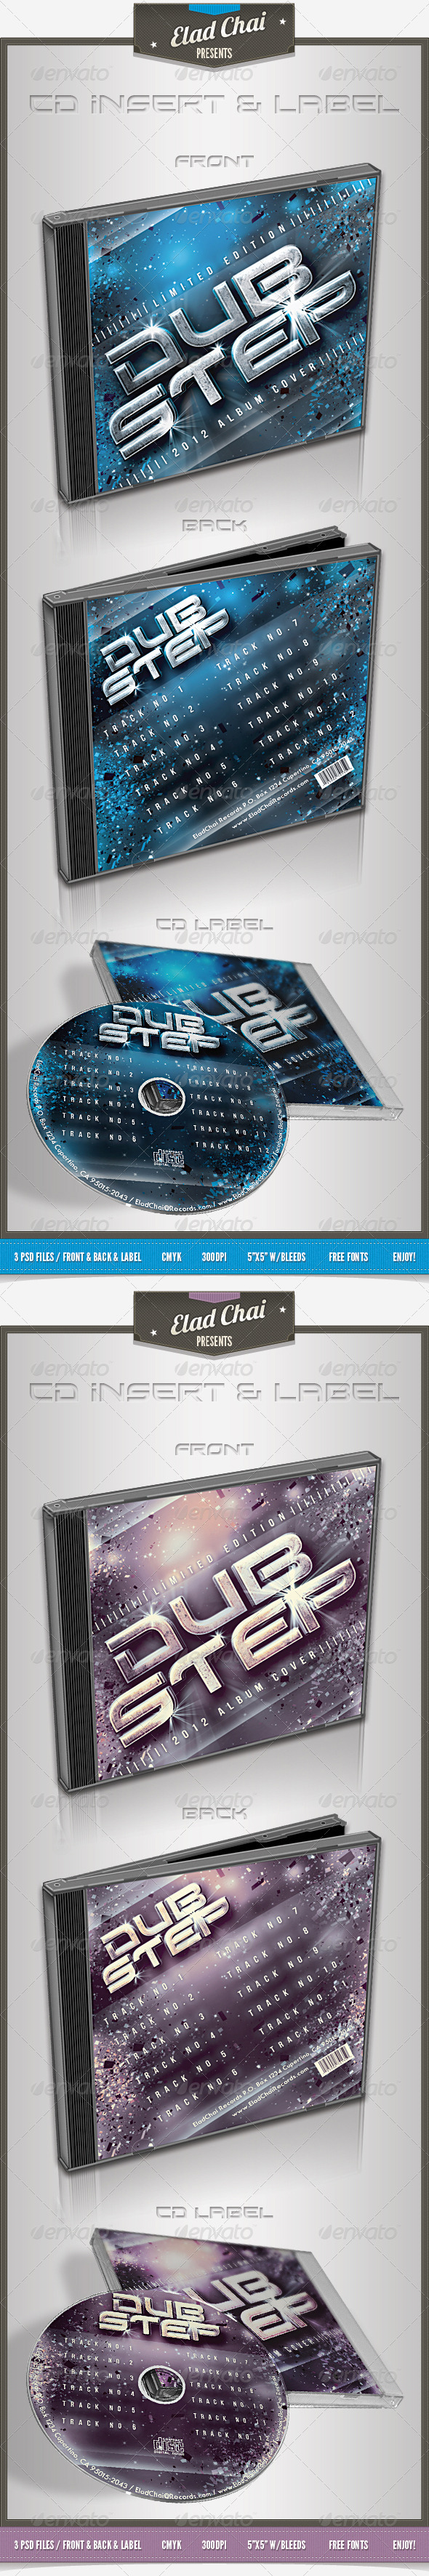 Dubstep CD Cover | Insert & Label - CD & DVD Artwork Print Templates